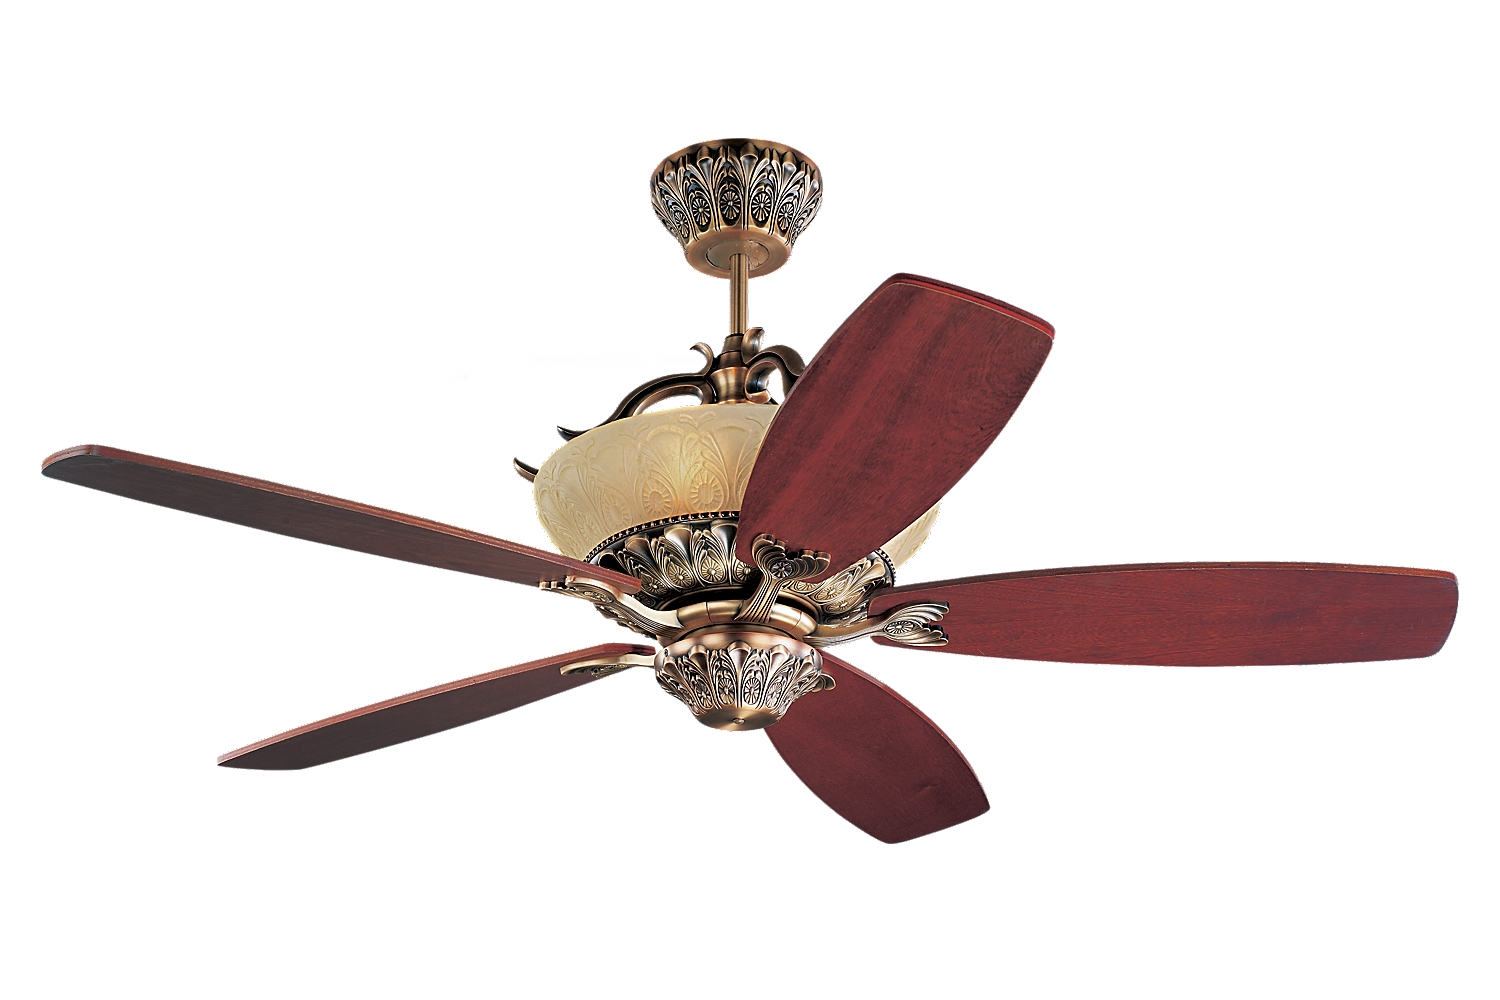 Ceiling Fan By The Monte Carlo Company